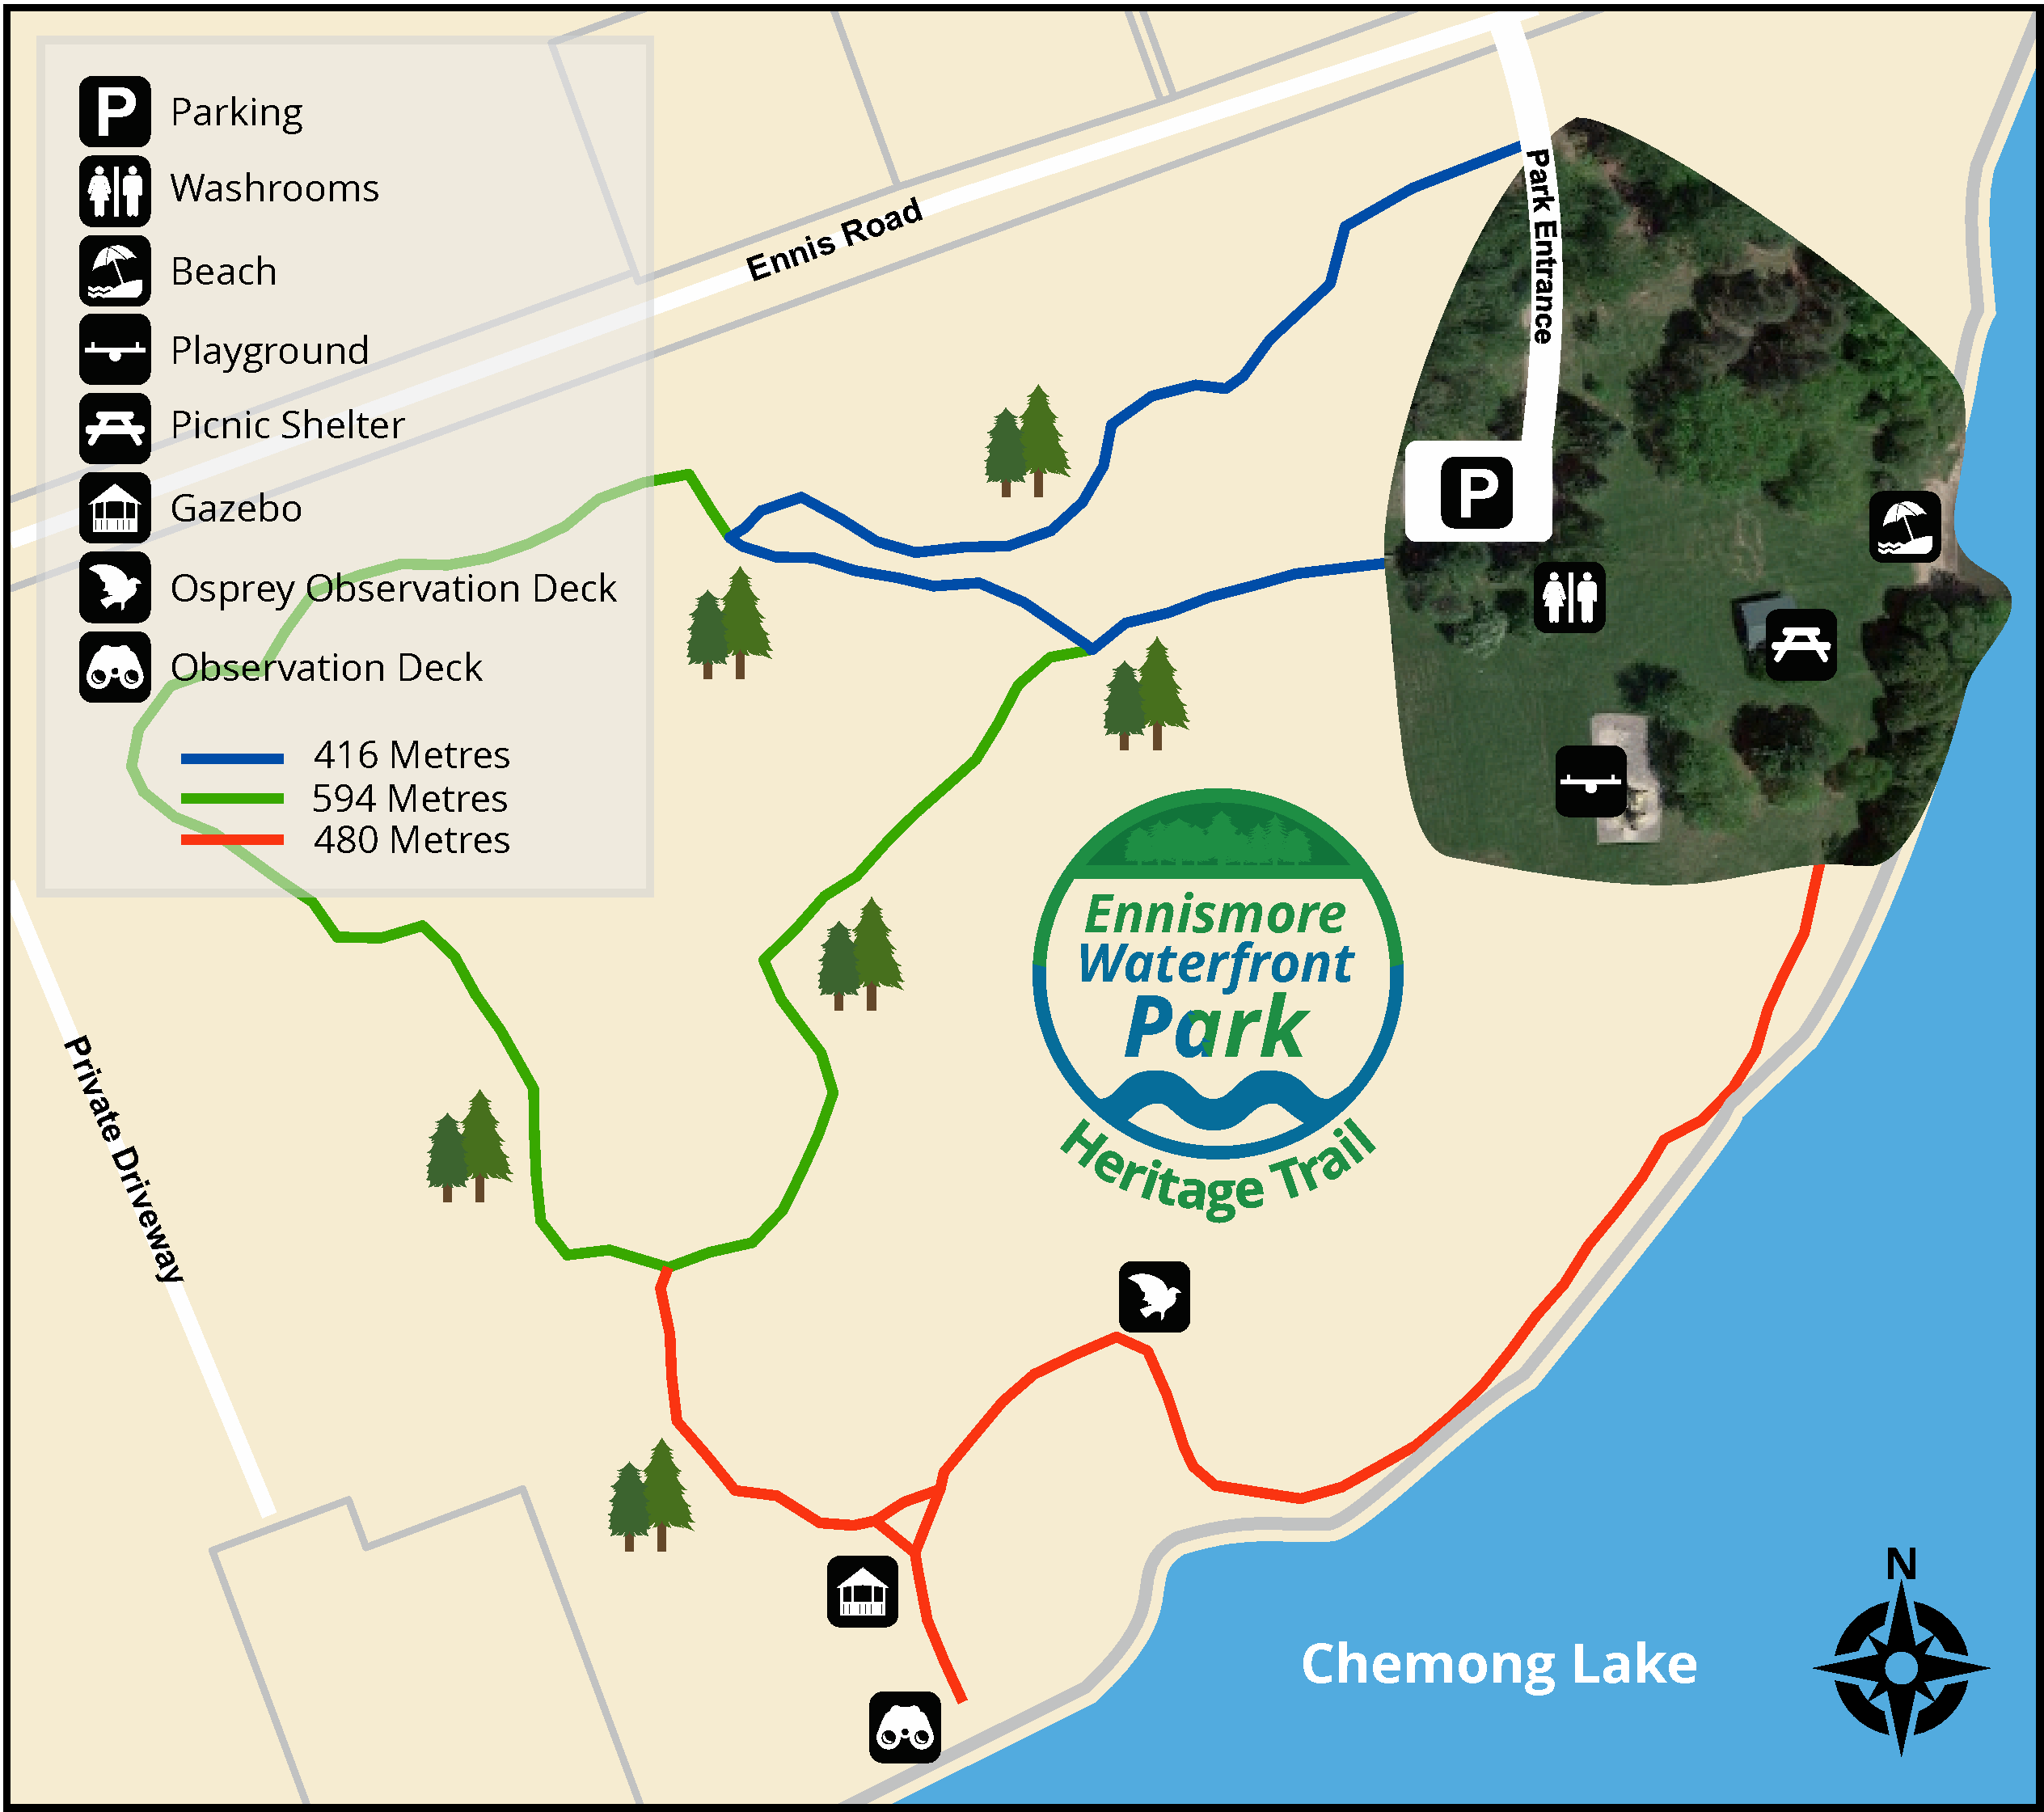 Map of the Ennismore Heritage Trail